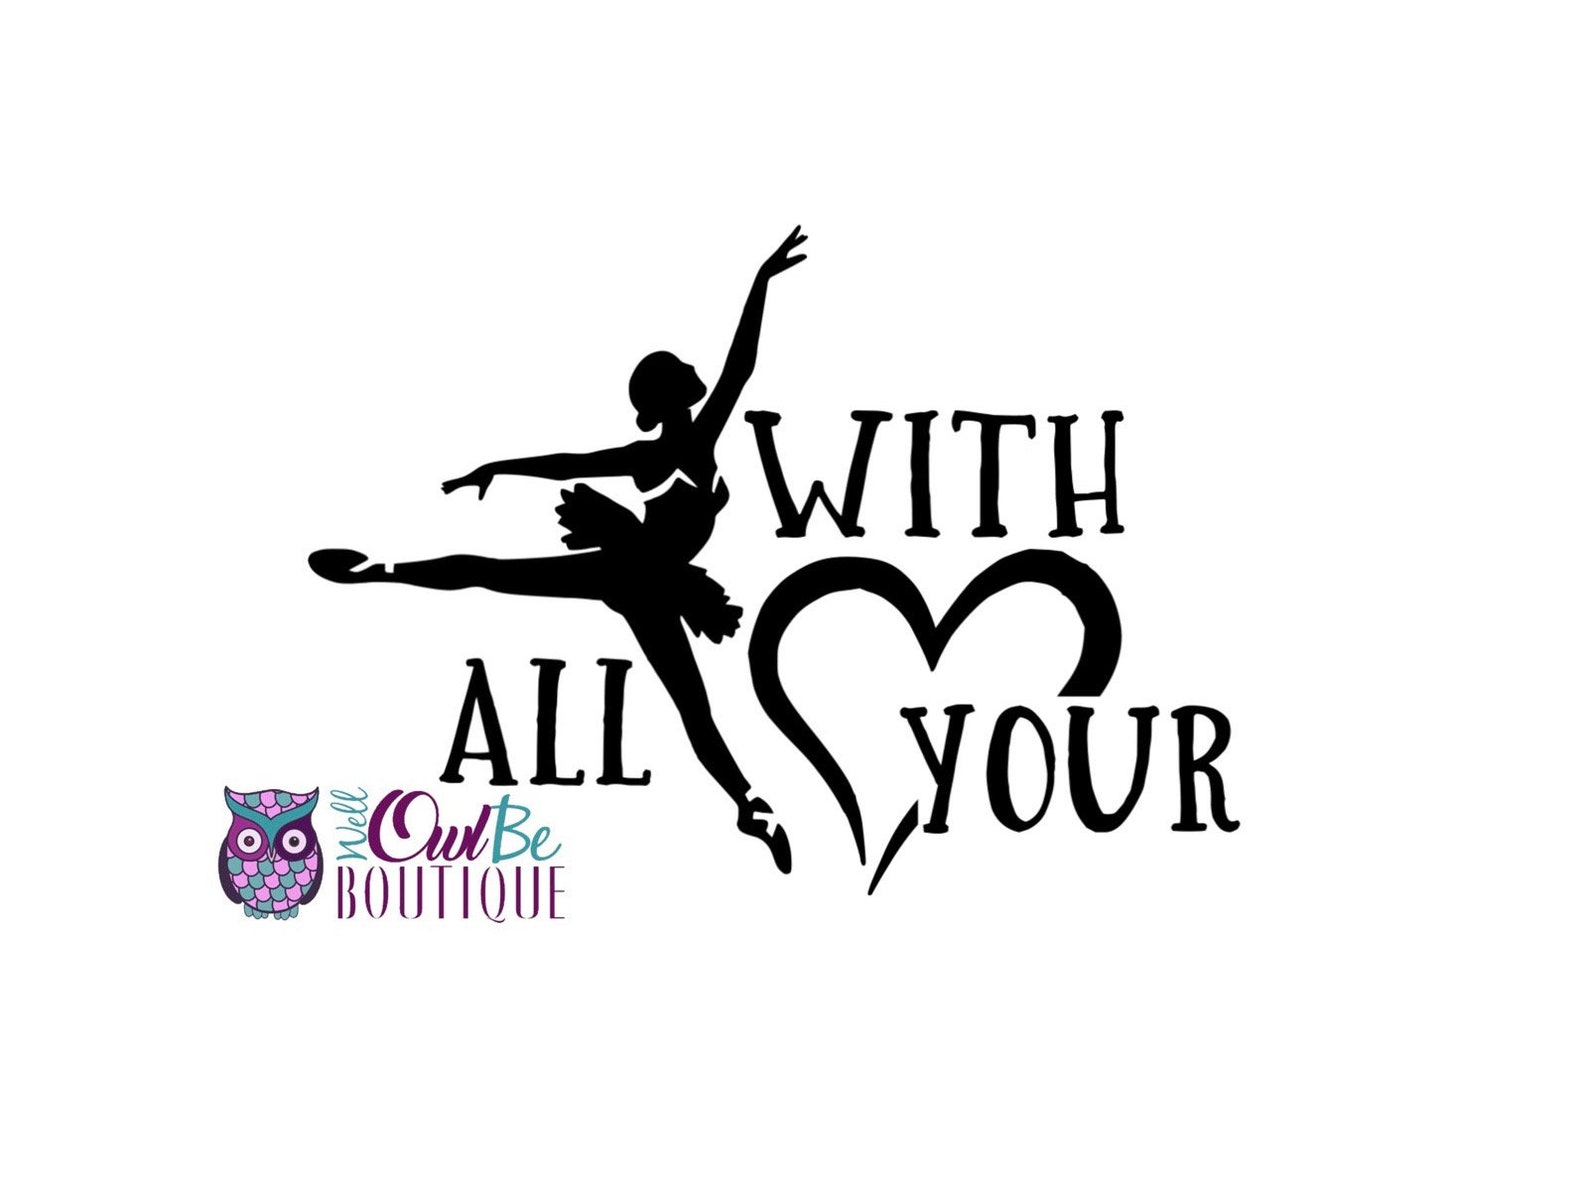 dance with all your heart|dance svg|ballet svg|dancing svg|ballet dancer svg|heart svg|dance|ballet|svg